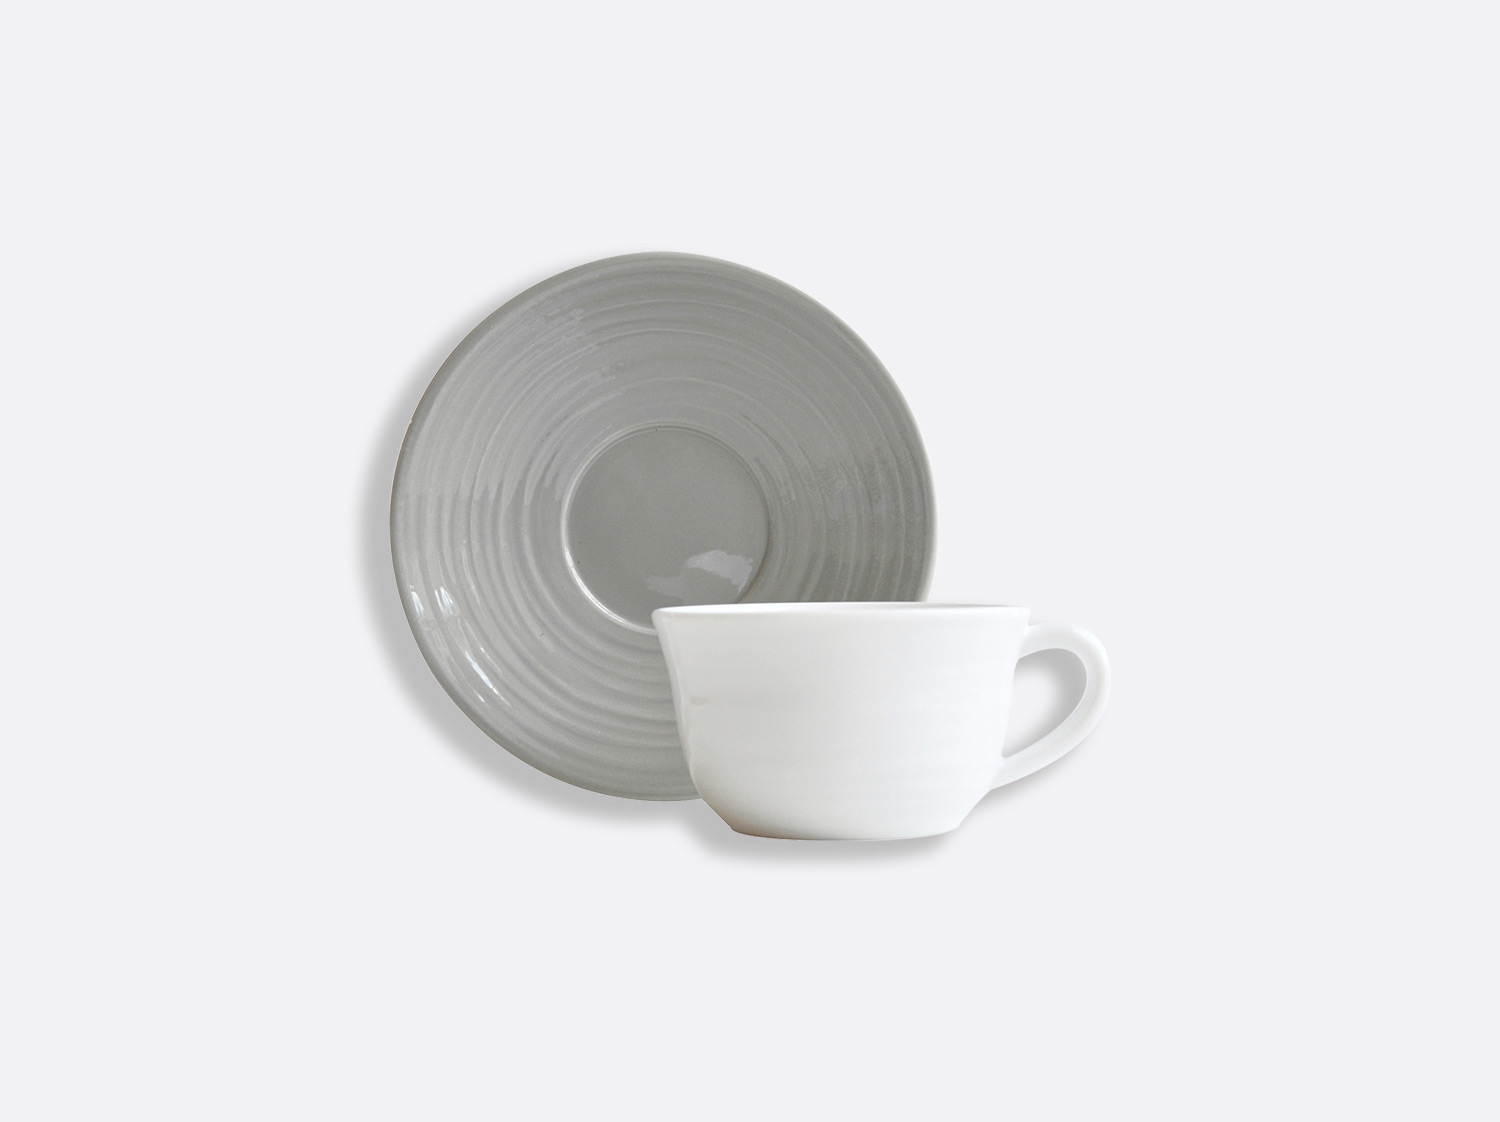 Tasse et soucoupe thé Gris 20 cl en porcelaine de la collection Origine gris Bernardaud